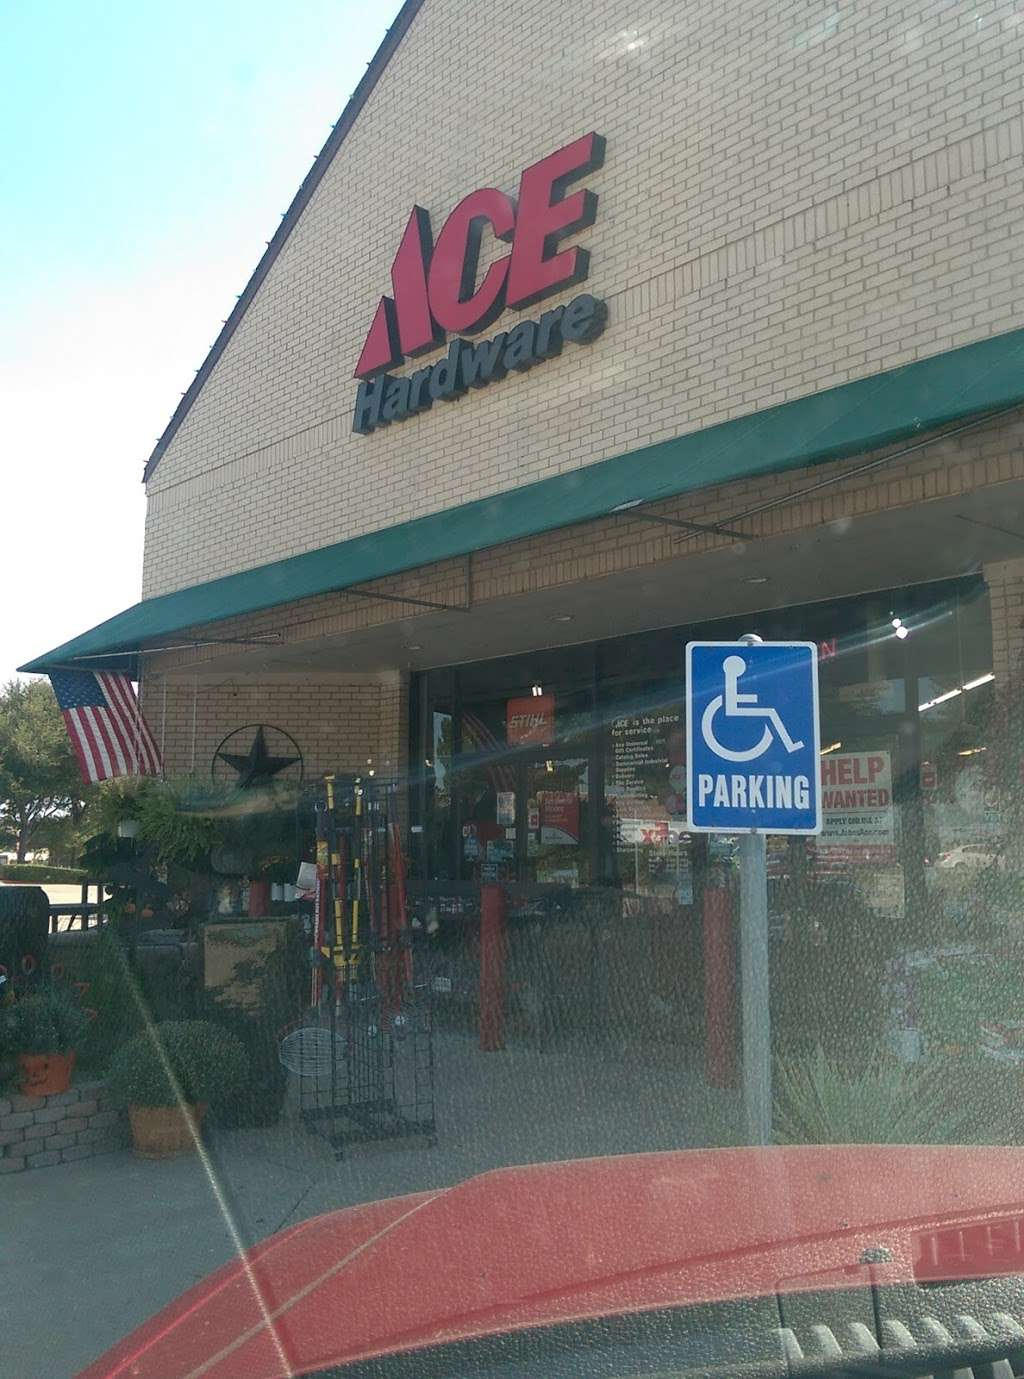 Jabos Ace Hardware Coppell - hardware store  | Photo 5 of 10 | Address: 465 S Denton Tap Rd, Coppell, TX 75019, USA | Phone: (972) 462-8668